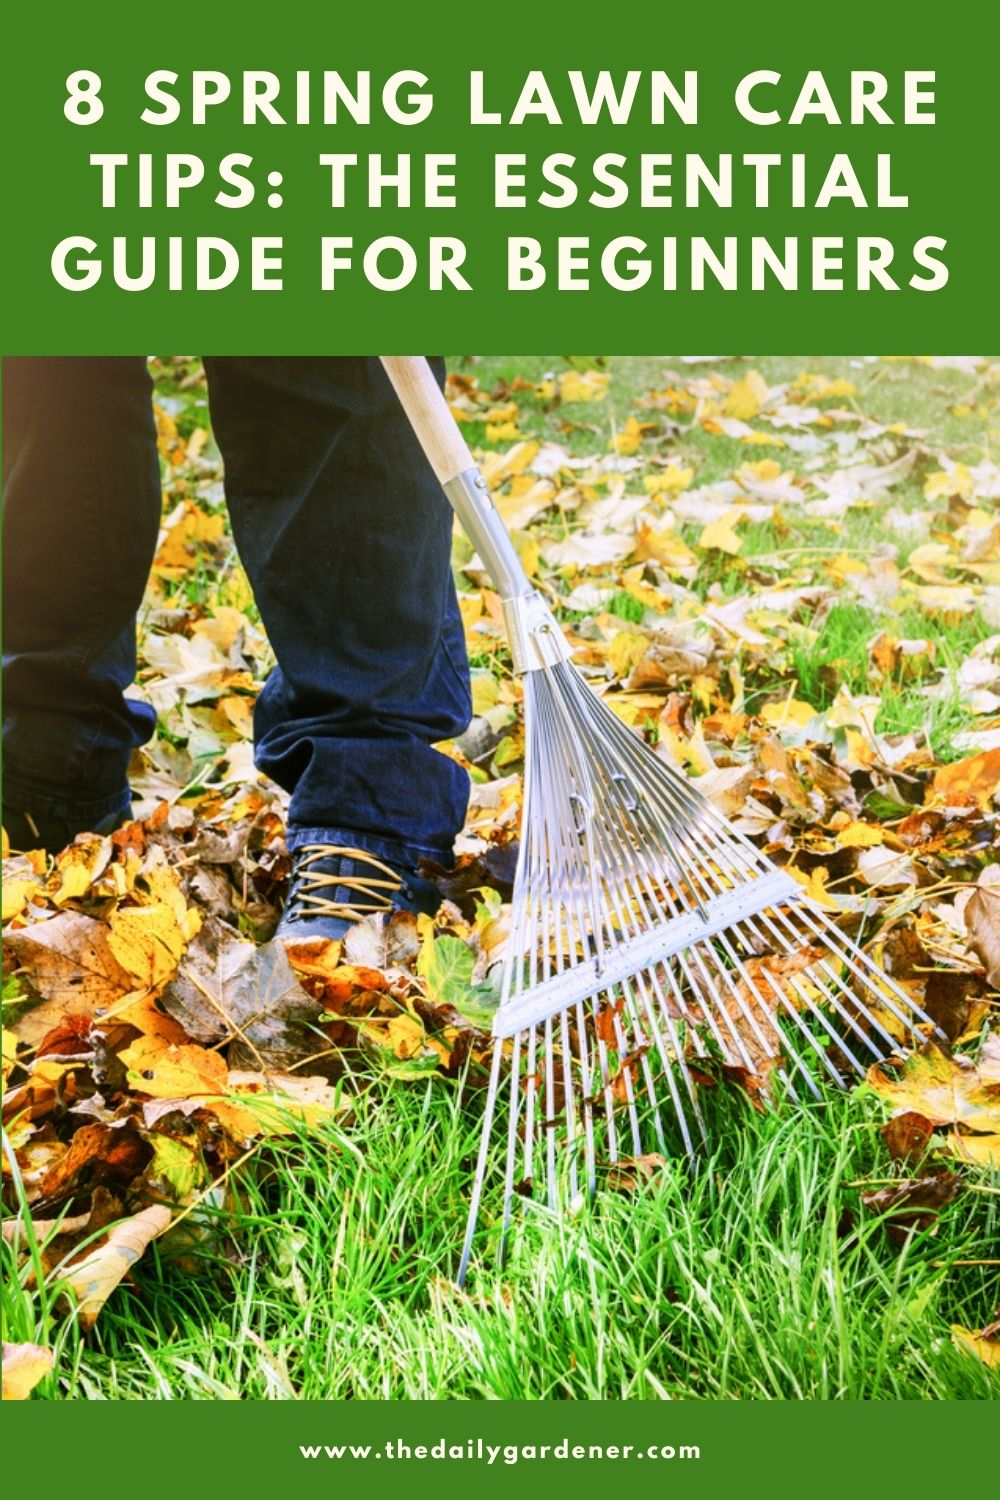 8 Spring Lawn Care Tips The Essential Guide for Beginners 2